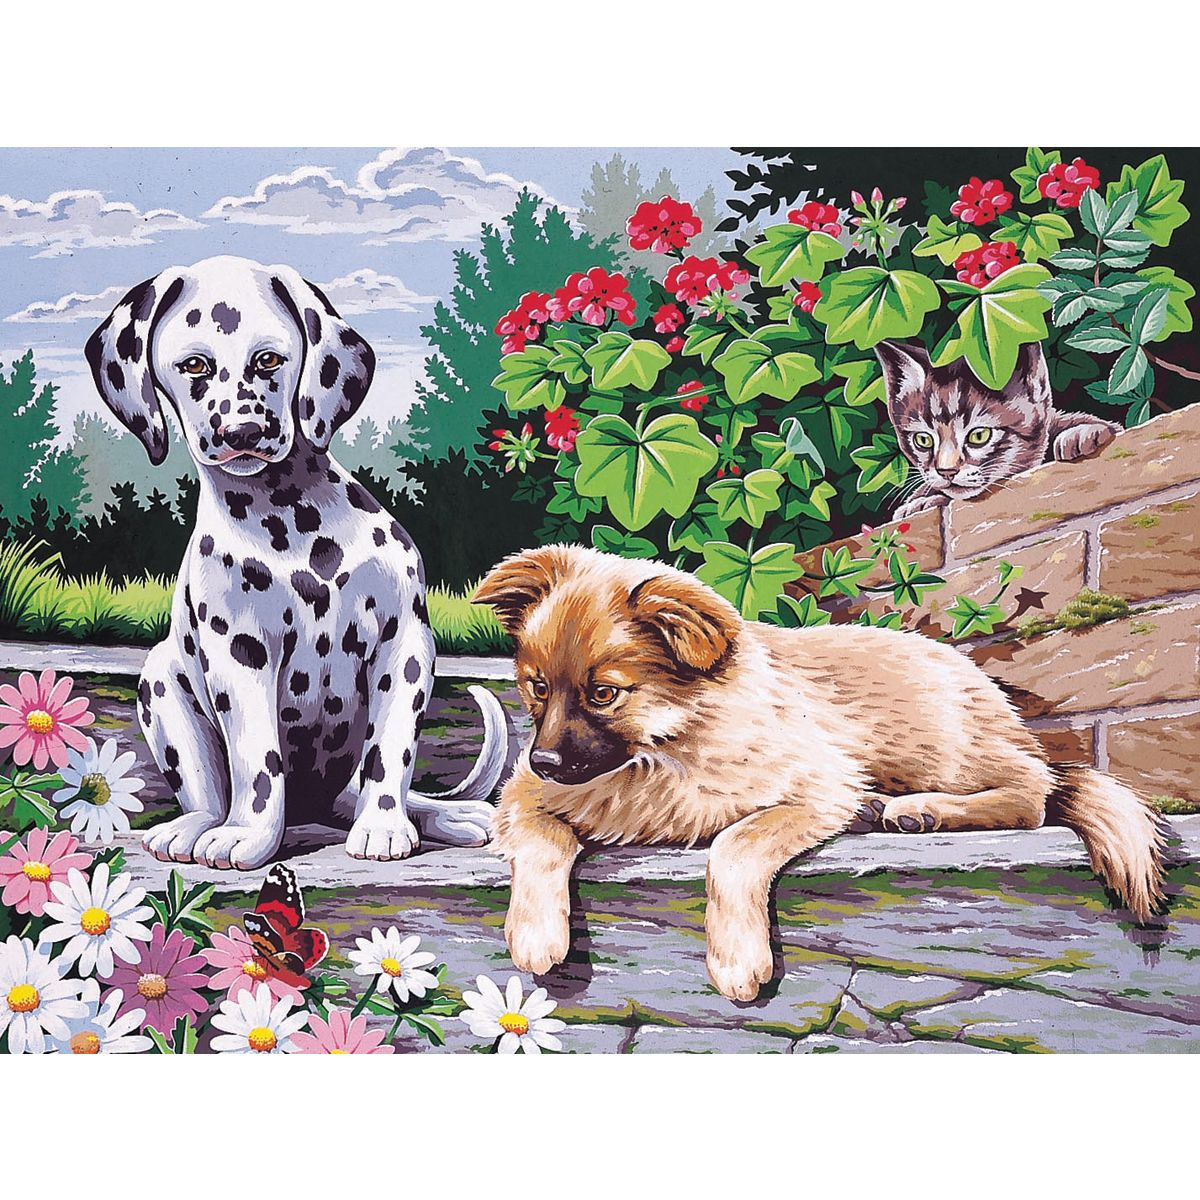 Reeves Paint By Number Kit 12inX16inDogs Watching (Dogs Watching ...